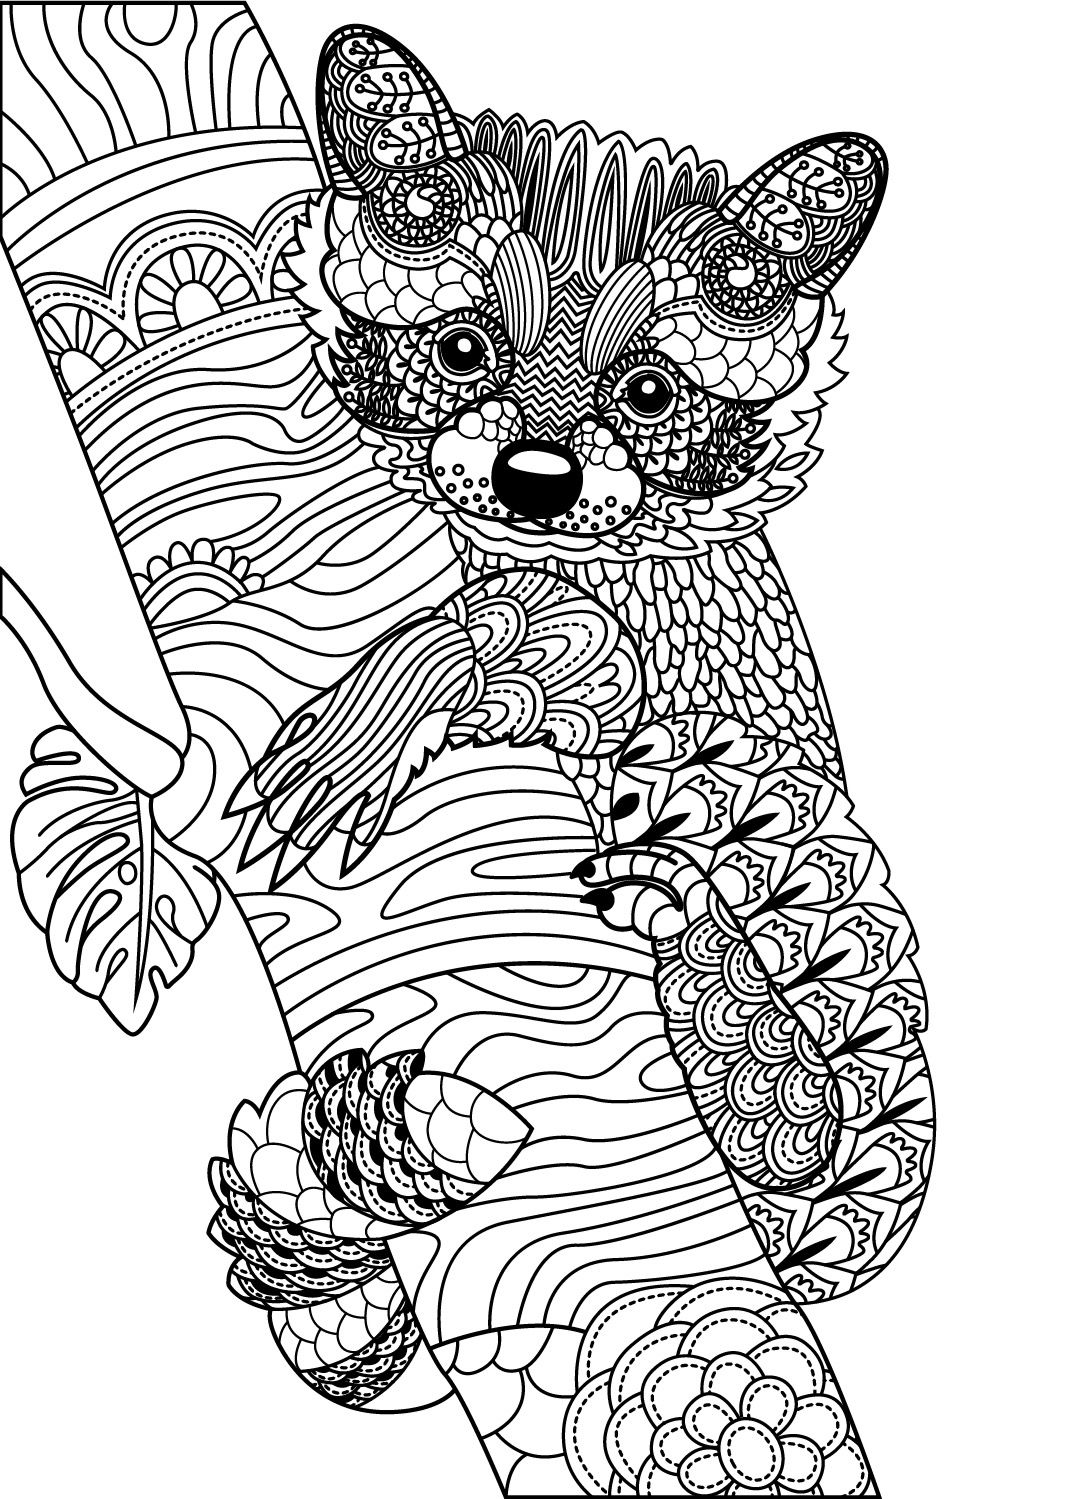 Wild Animals To Color Colorish Free Coloring App For Adults By